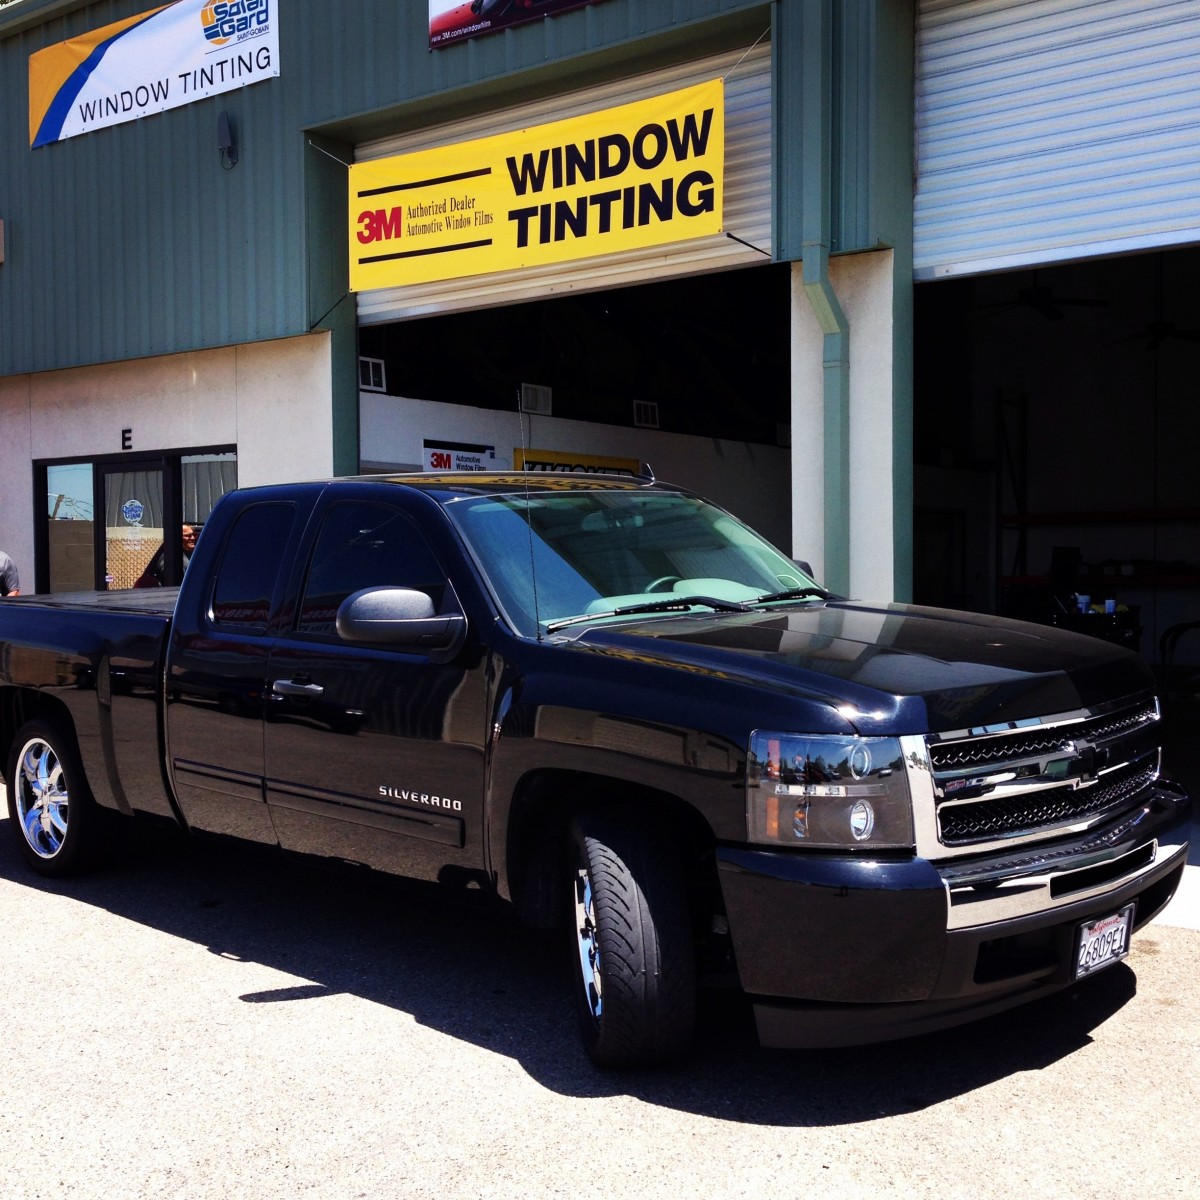 Chevy truck with tinted windows